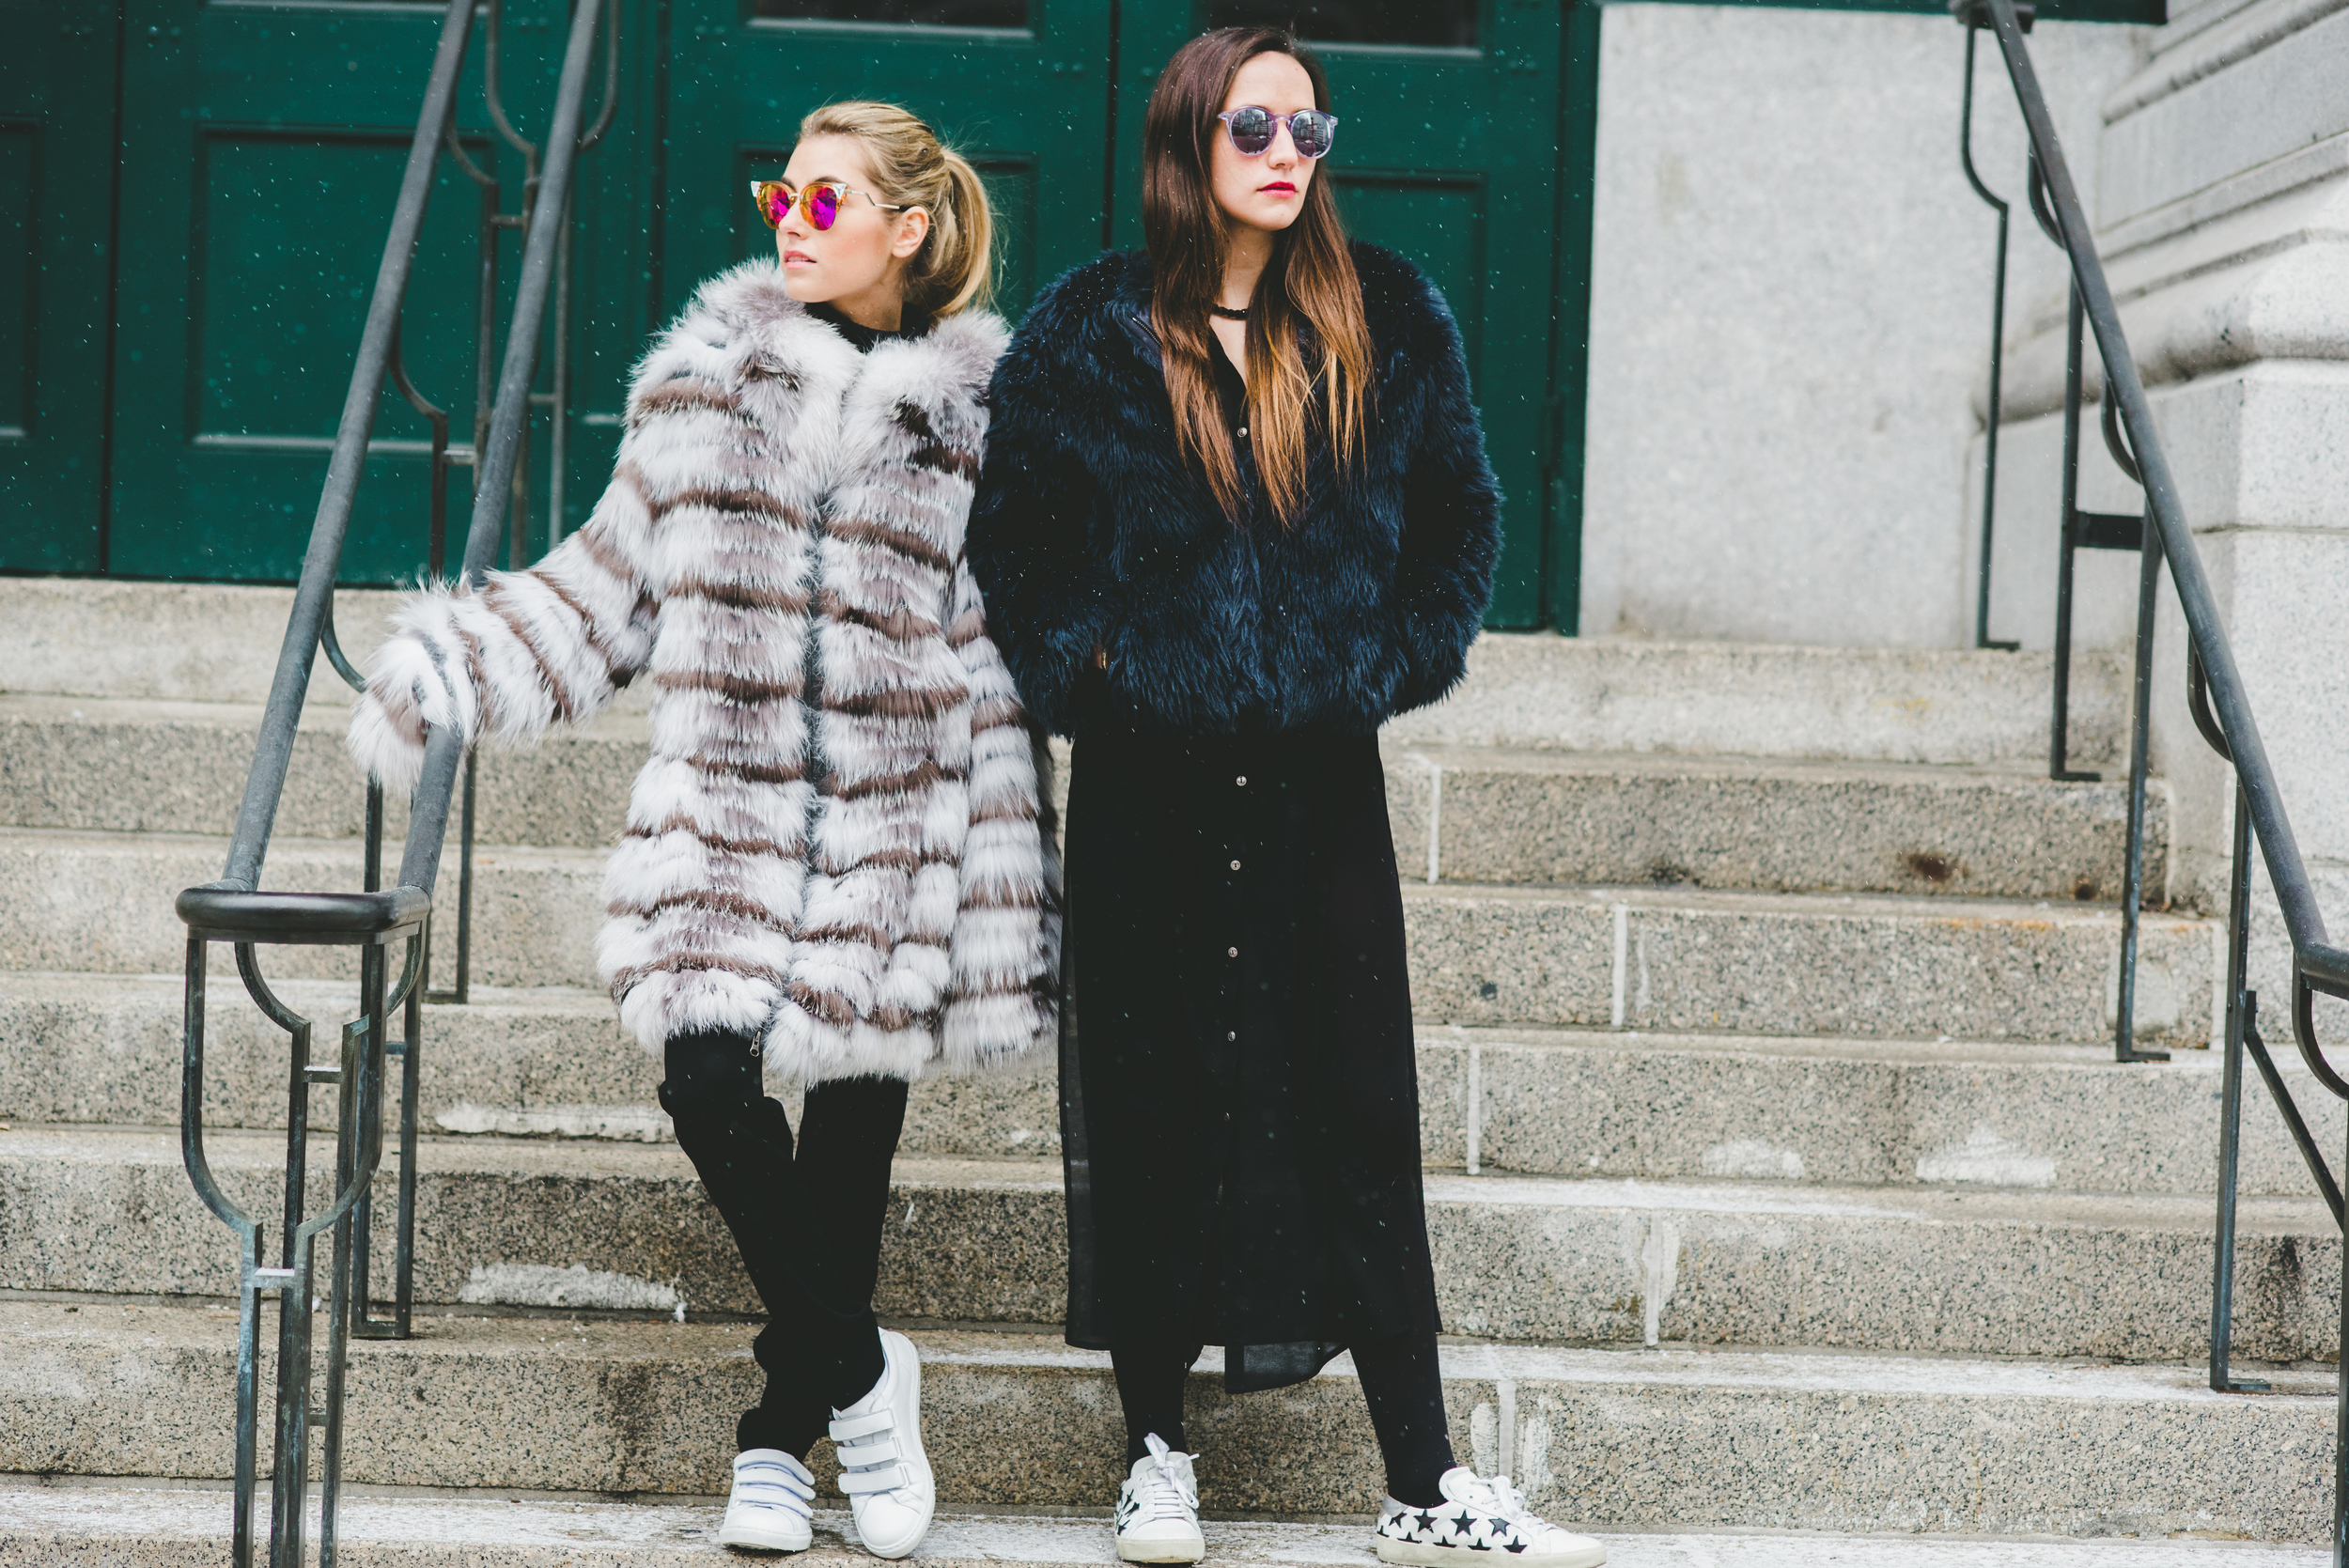 NYC and Brooklyn Street Style